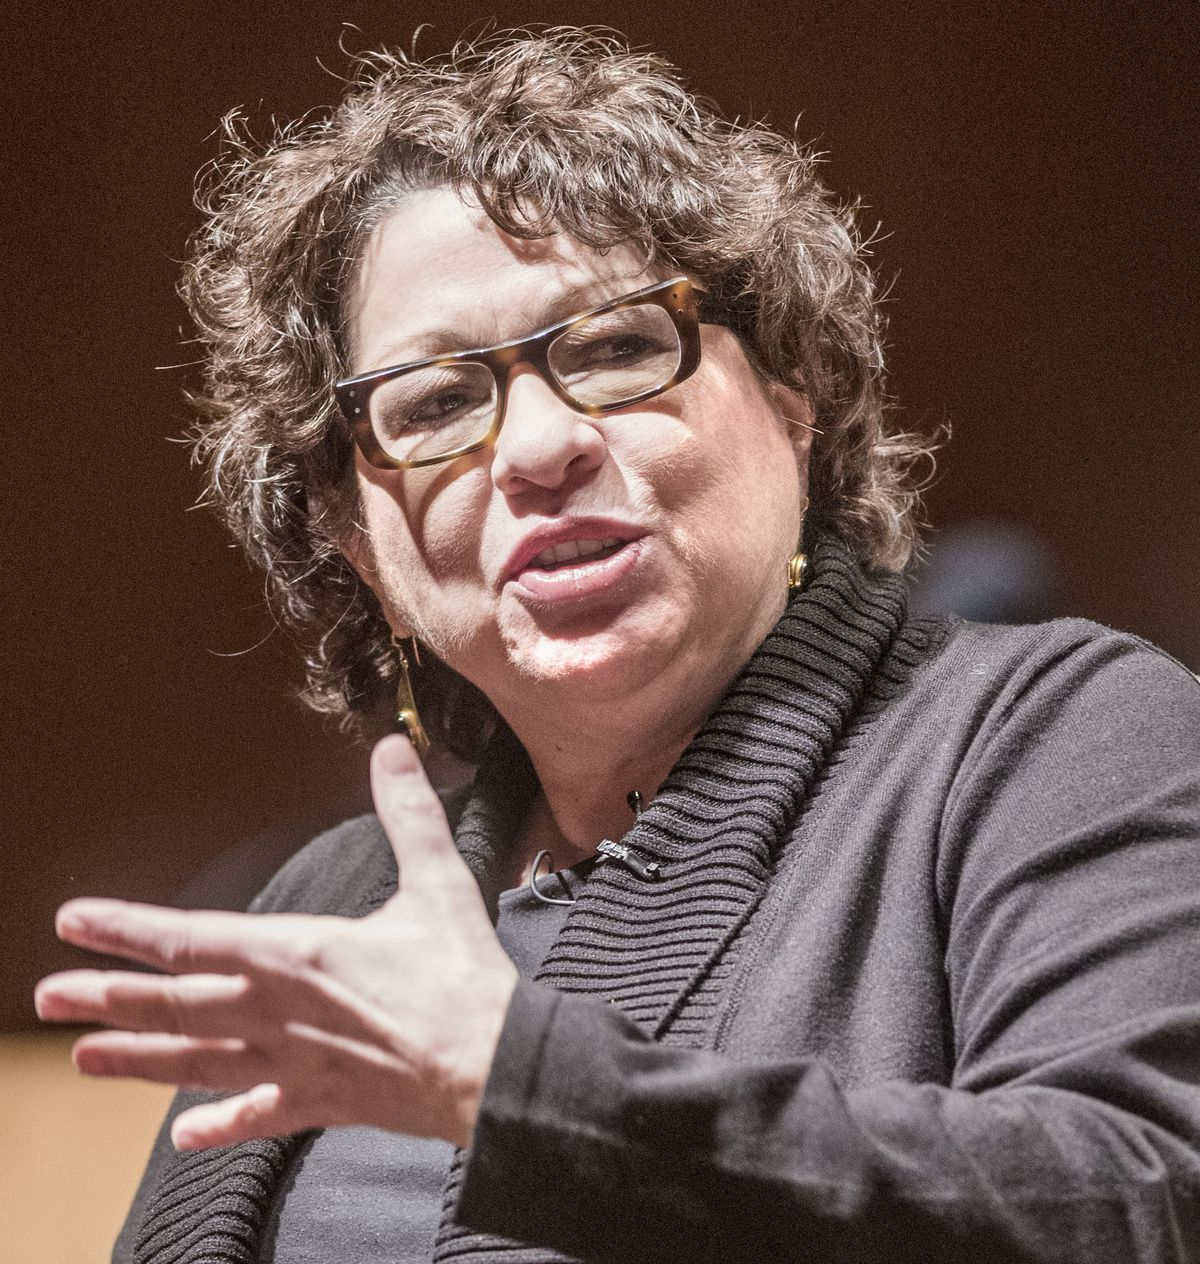 U.S. Supreme Court Justice Sonia Sotomayor in 2016.